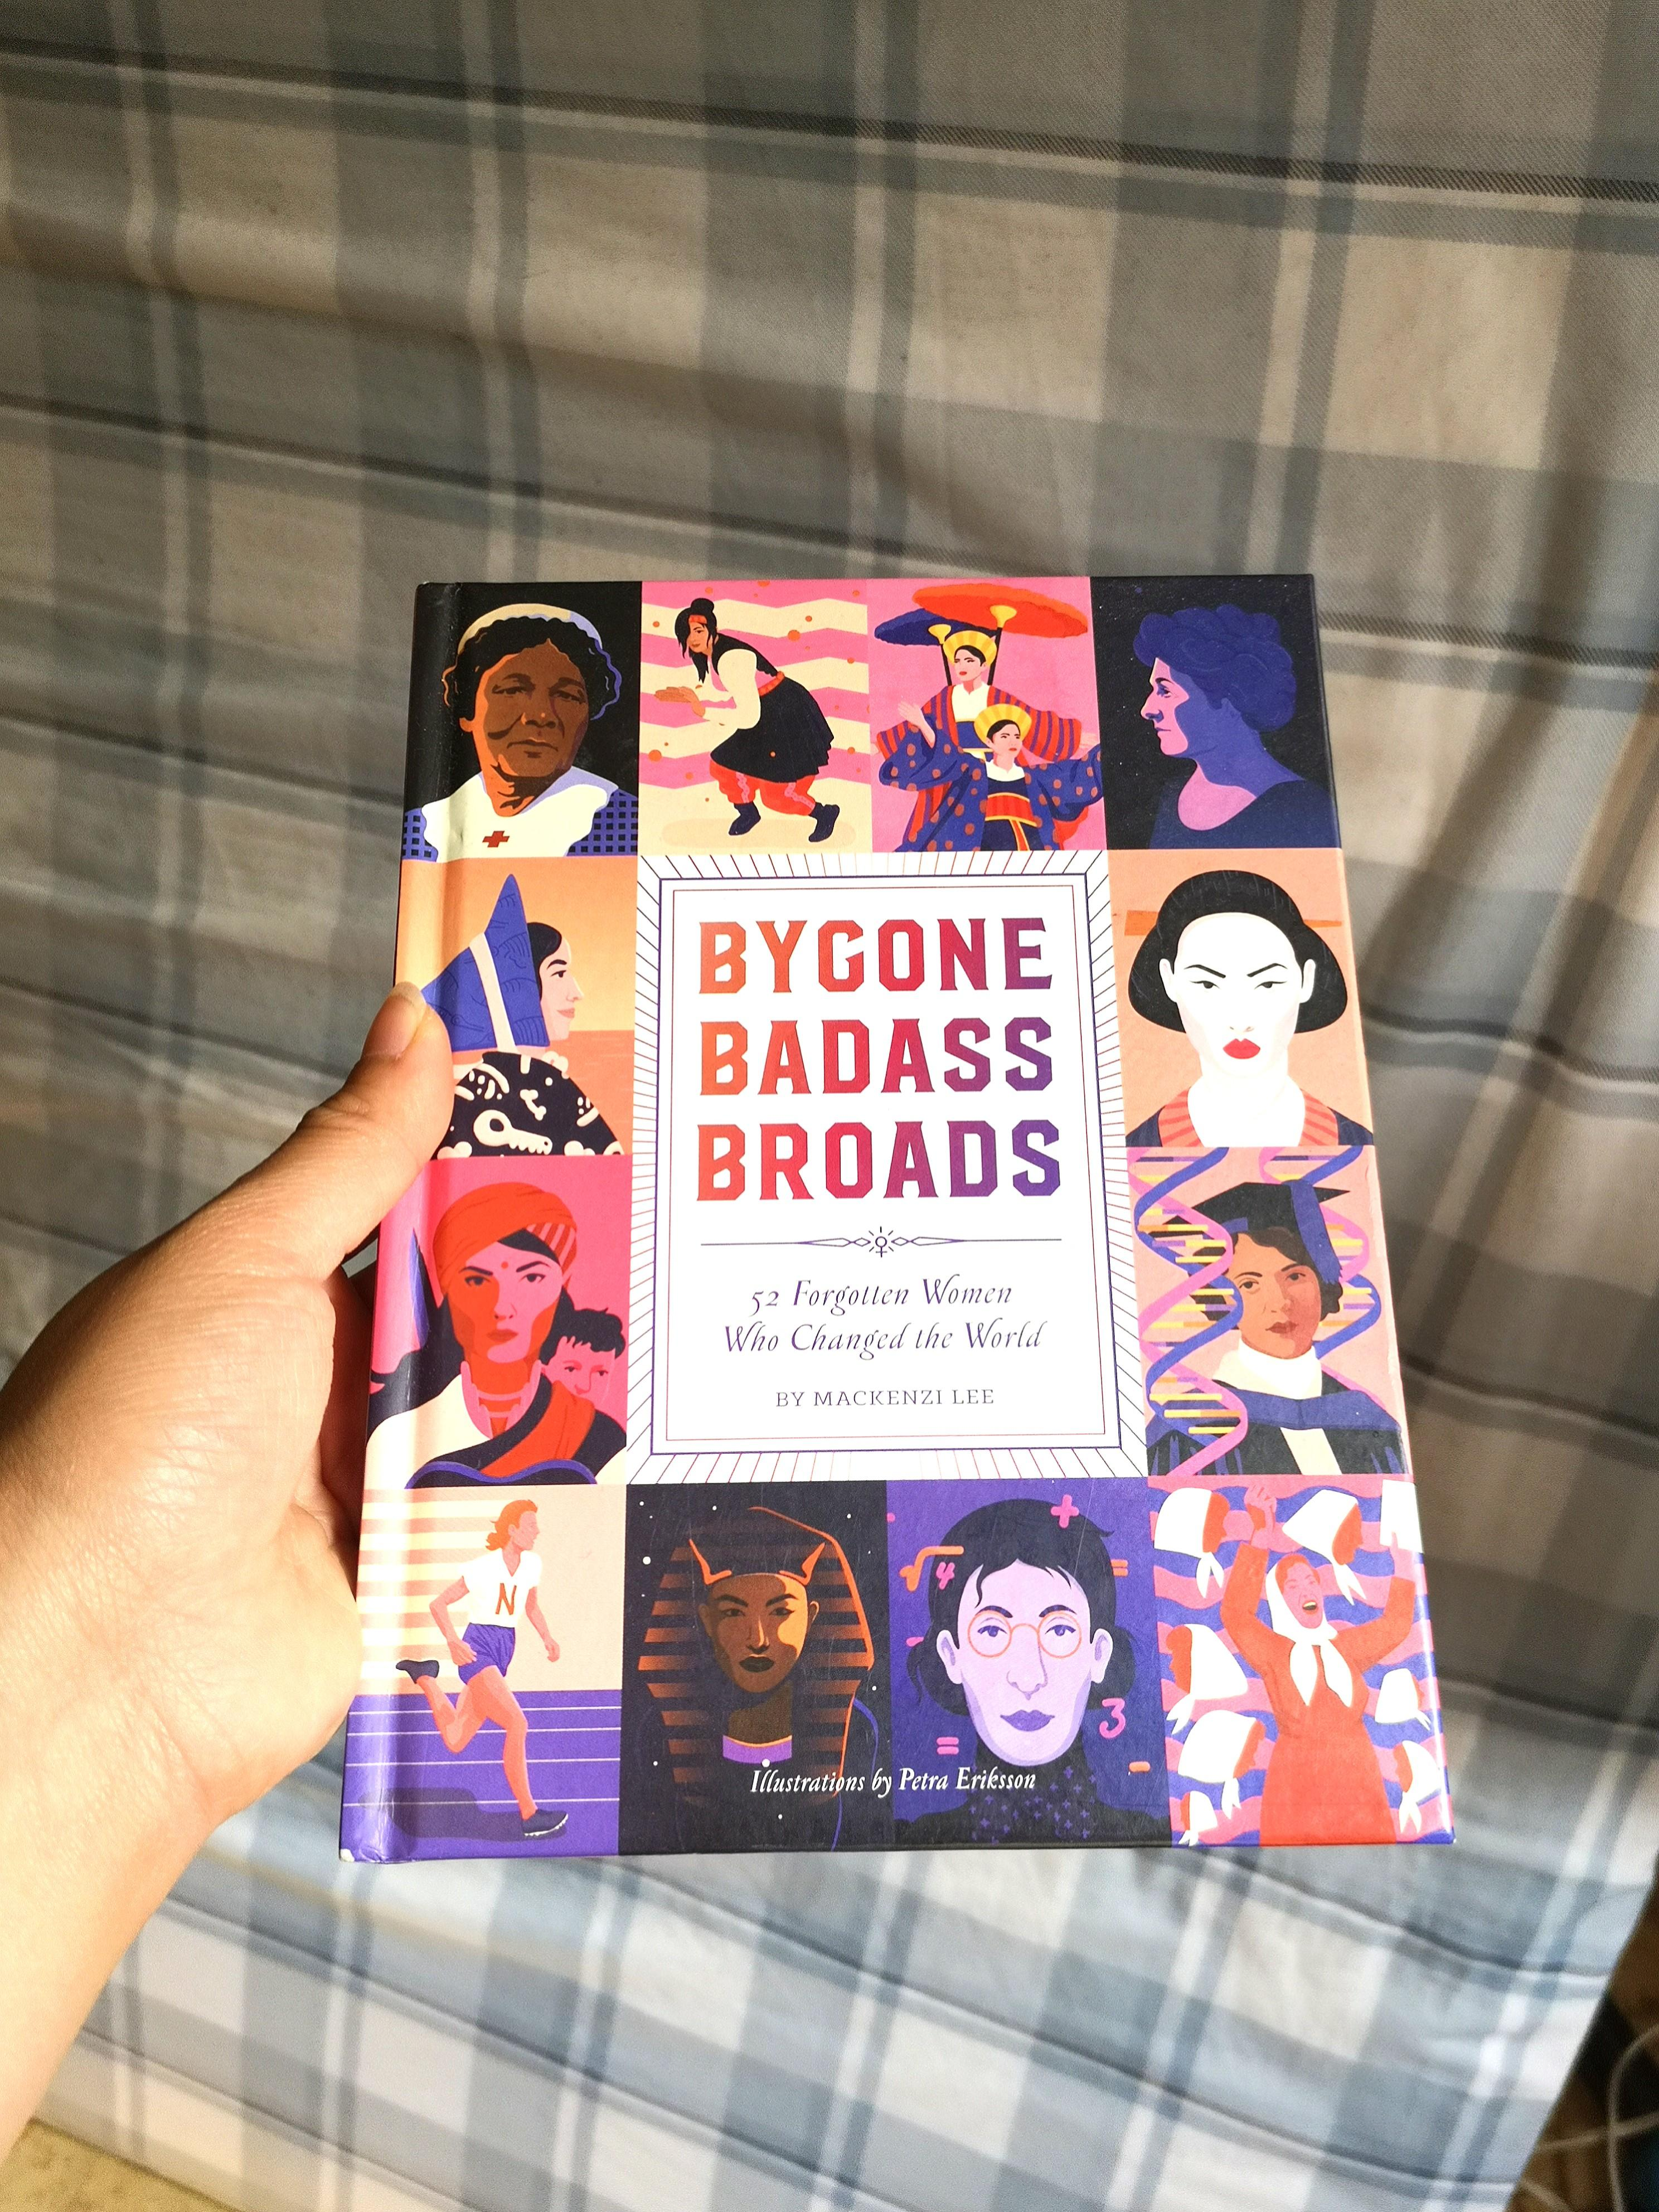 Bygone Badass Broads by Mackenzie Lee (book from indigo)